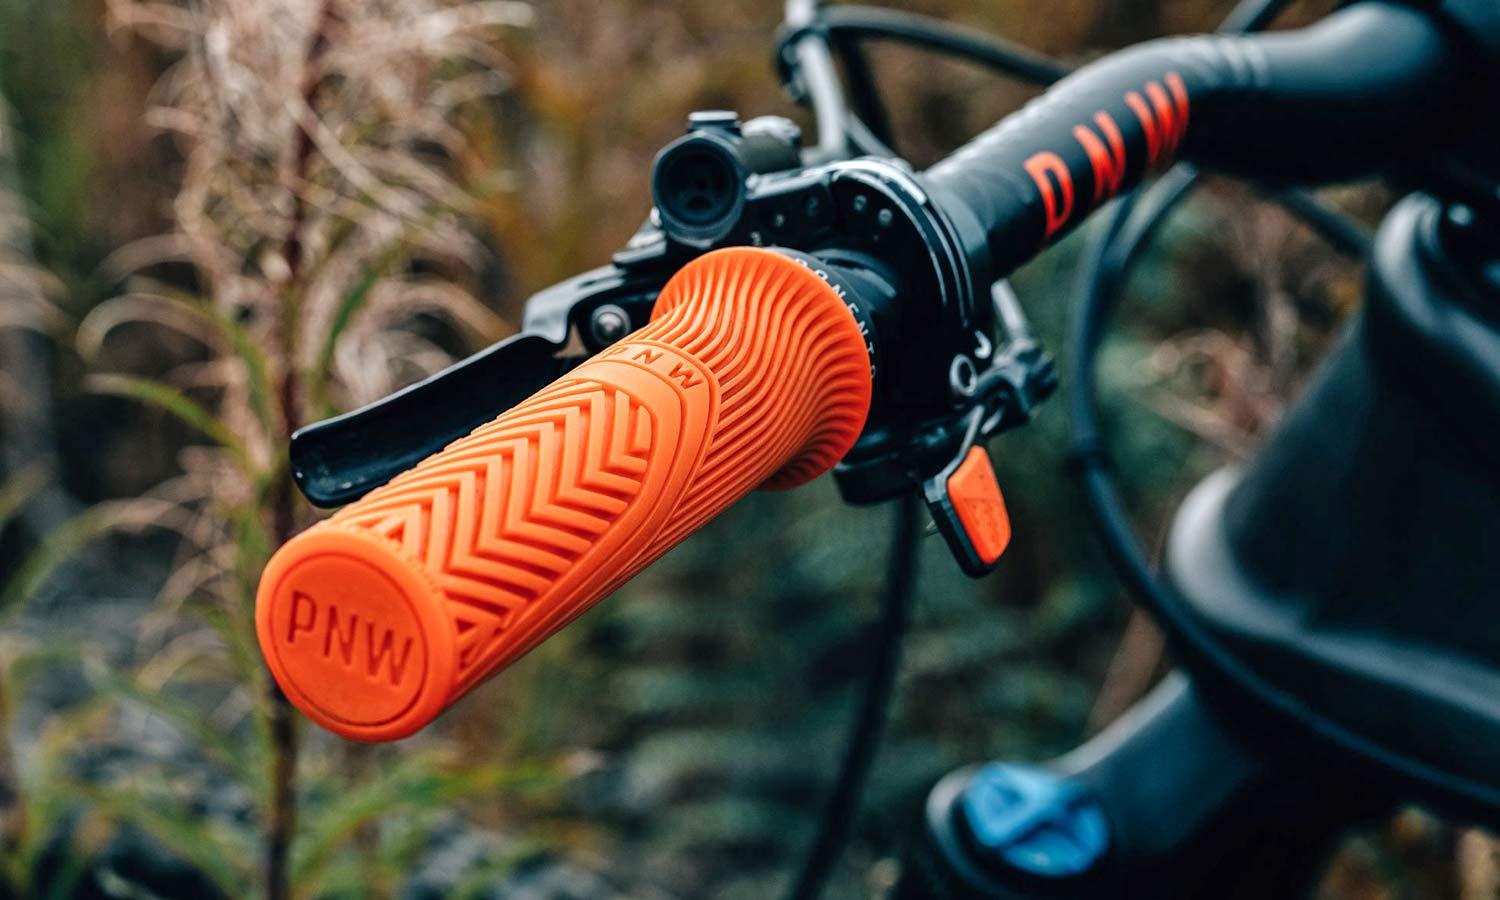 PNW Loam Grips lock-on with ultra tacky rubber grip